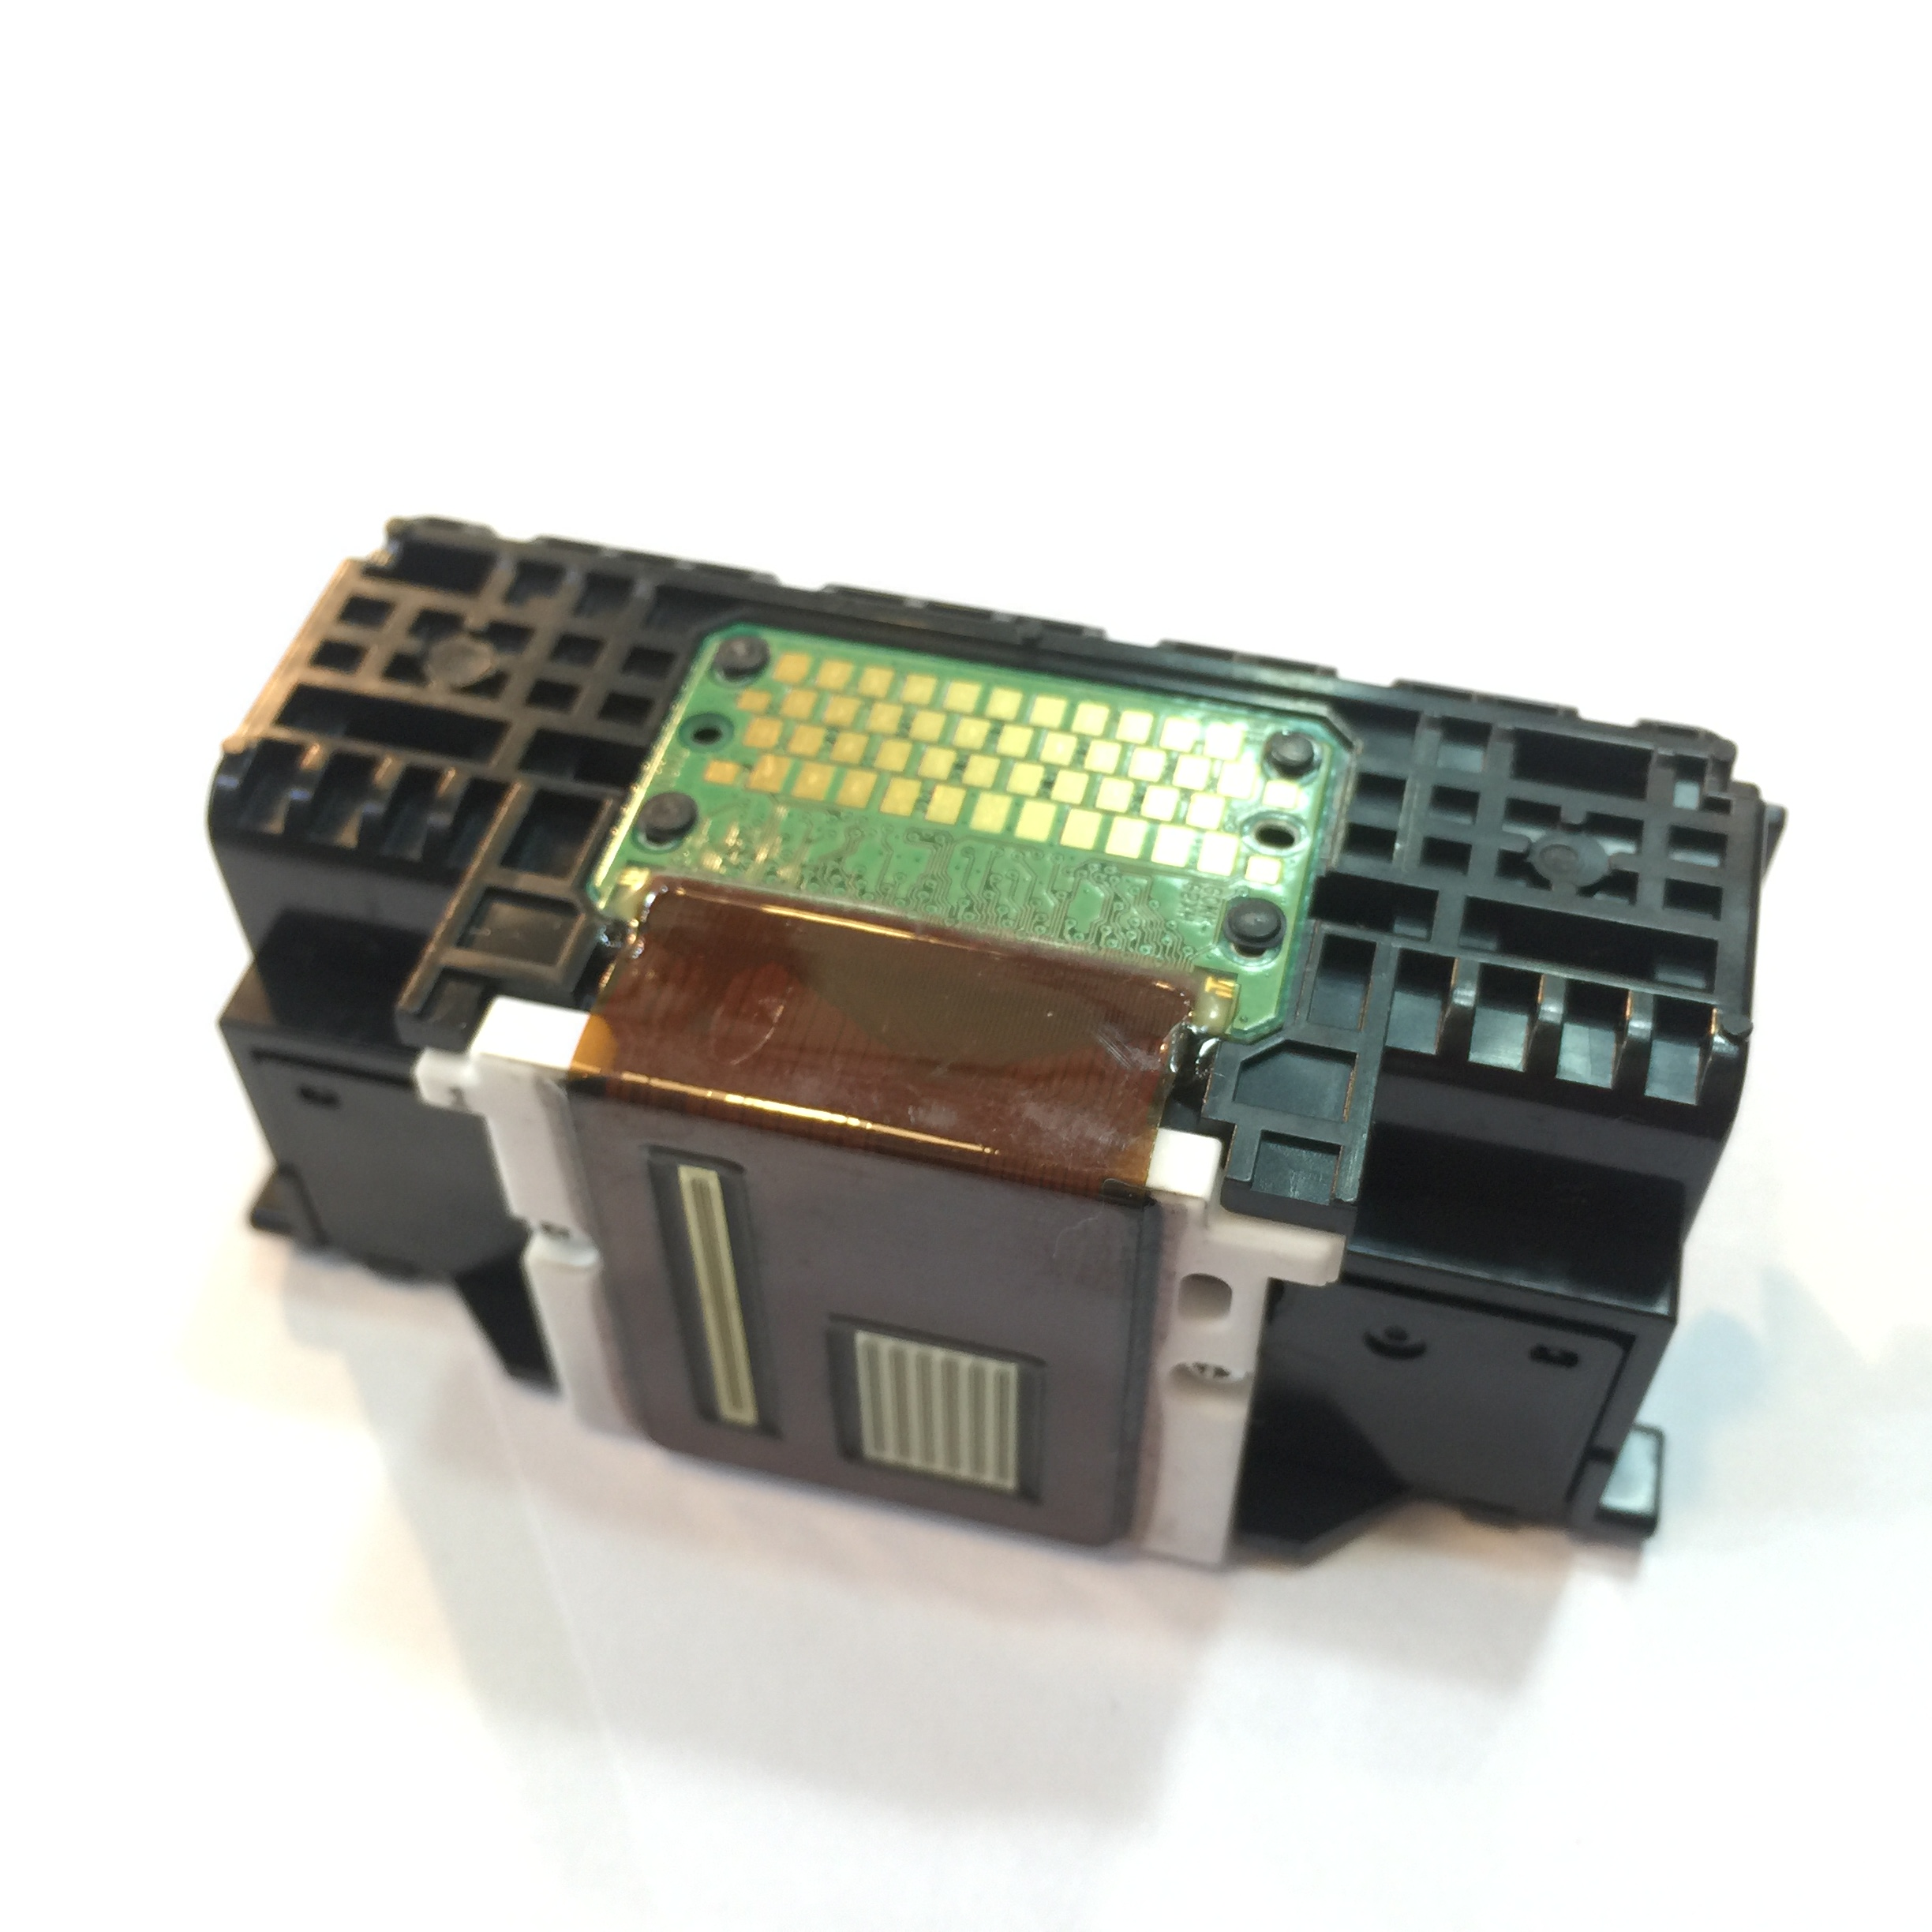 PRINT HEAD QY6-0082 PRINTHEAD FOR CANON MG5420 MG 6320 IP7270 MG6420 iP7220 SHIPPING FREE IP7240 MG5740 ip7250 MG6640 MG6600 image